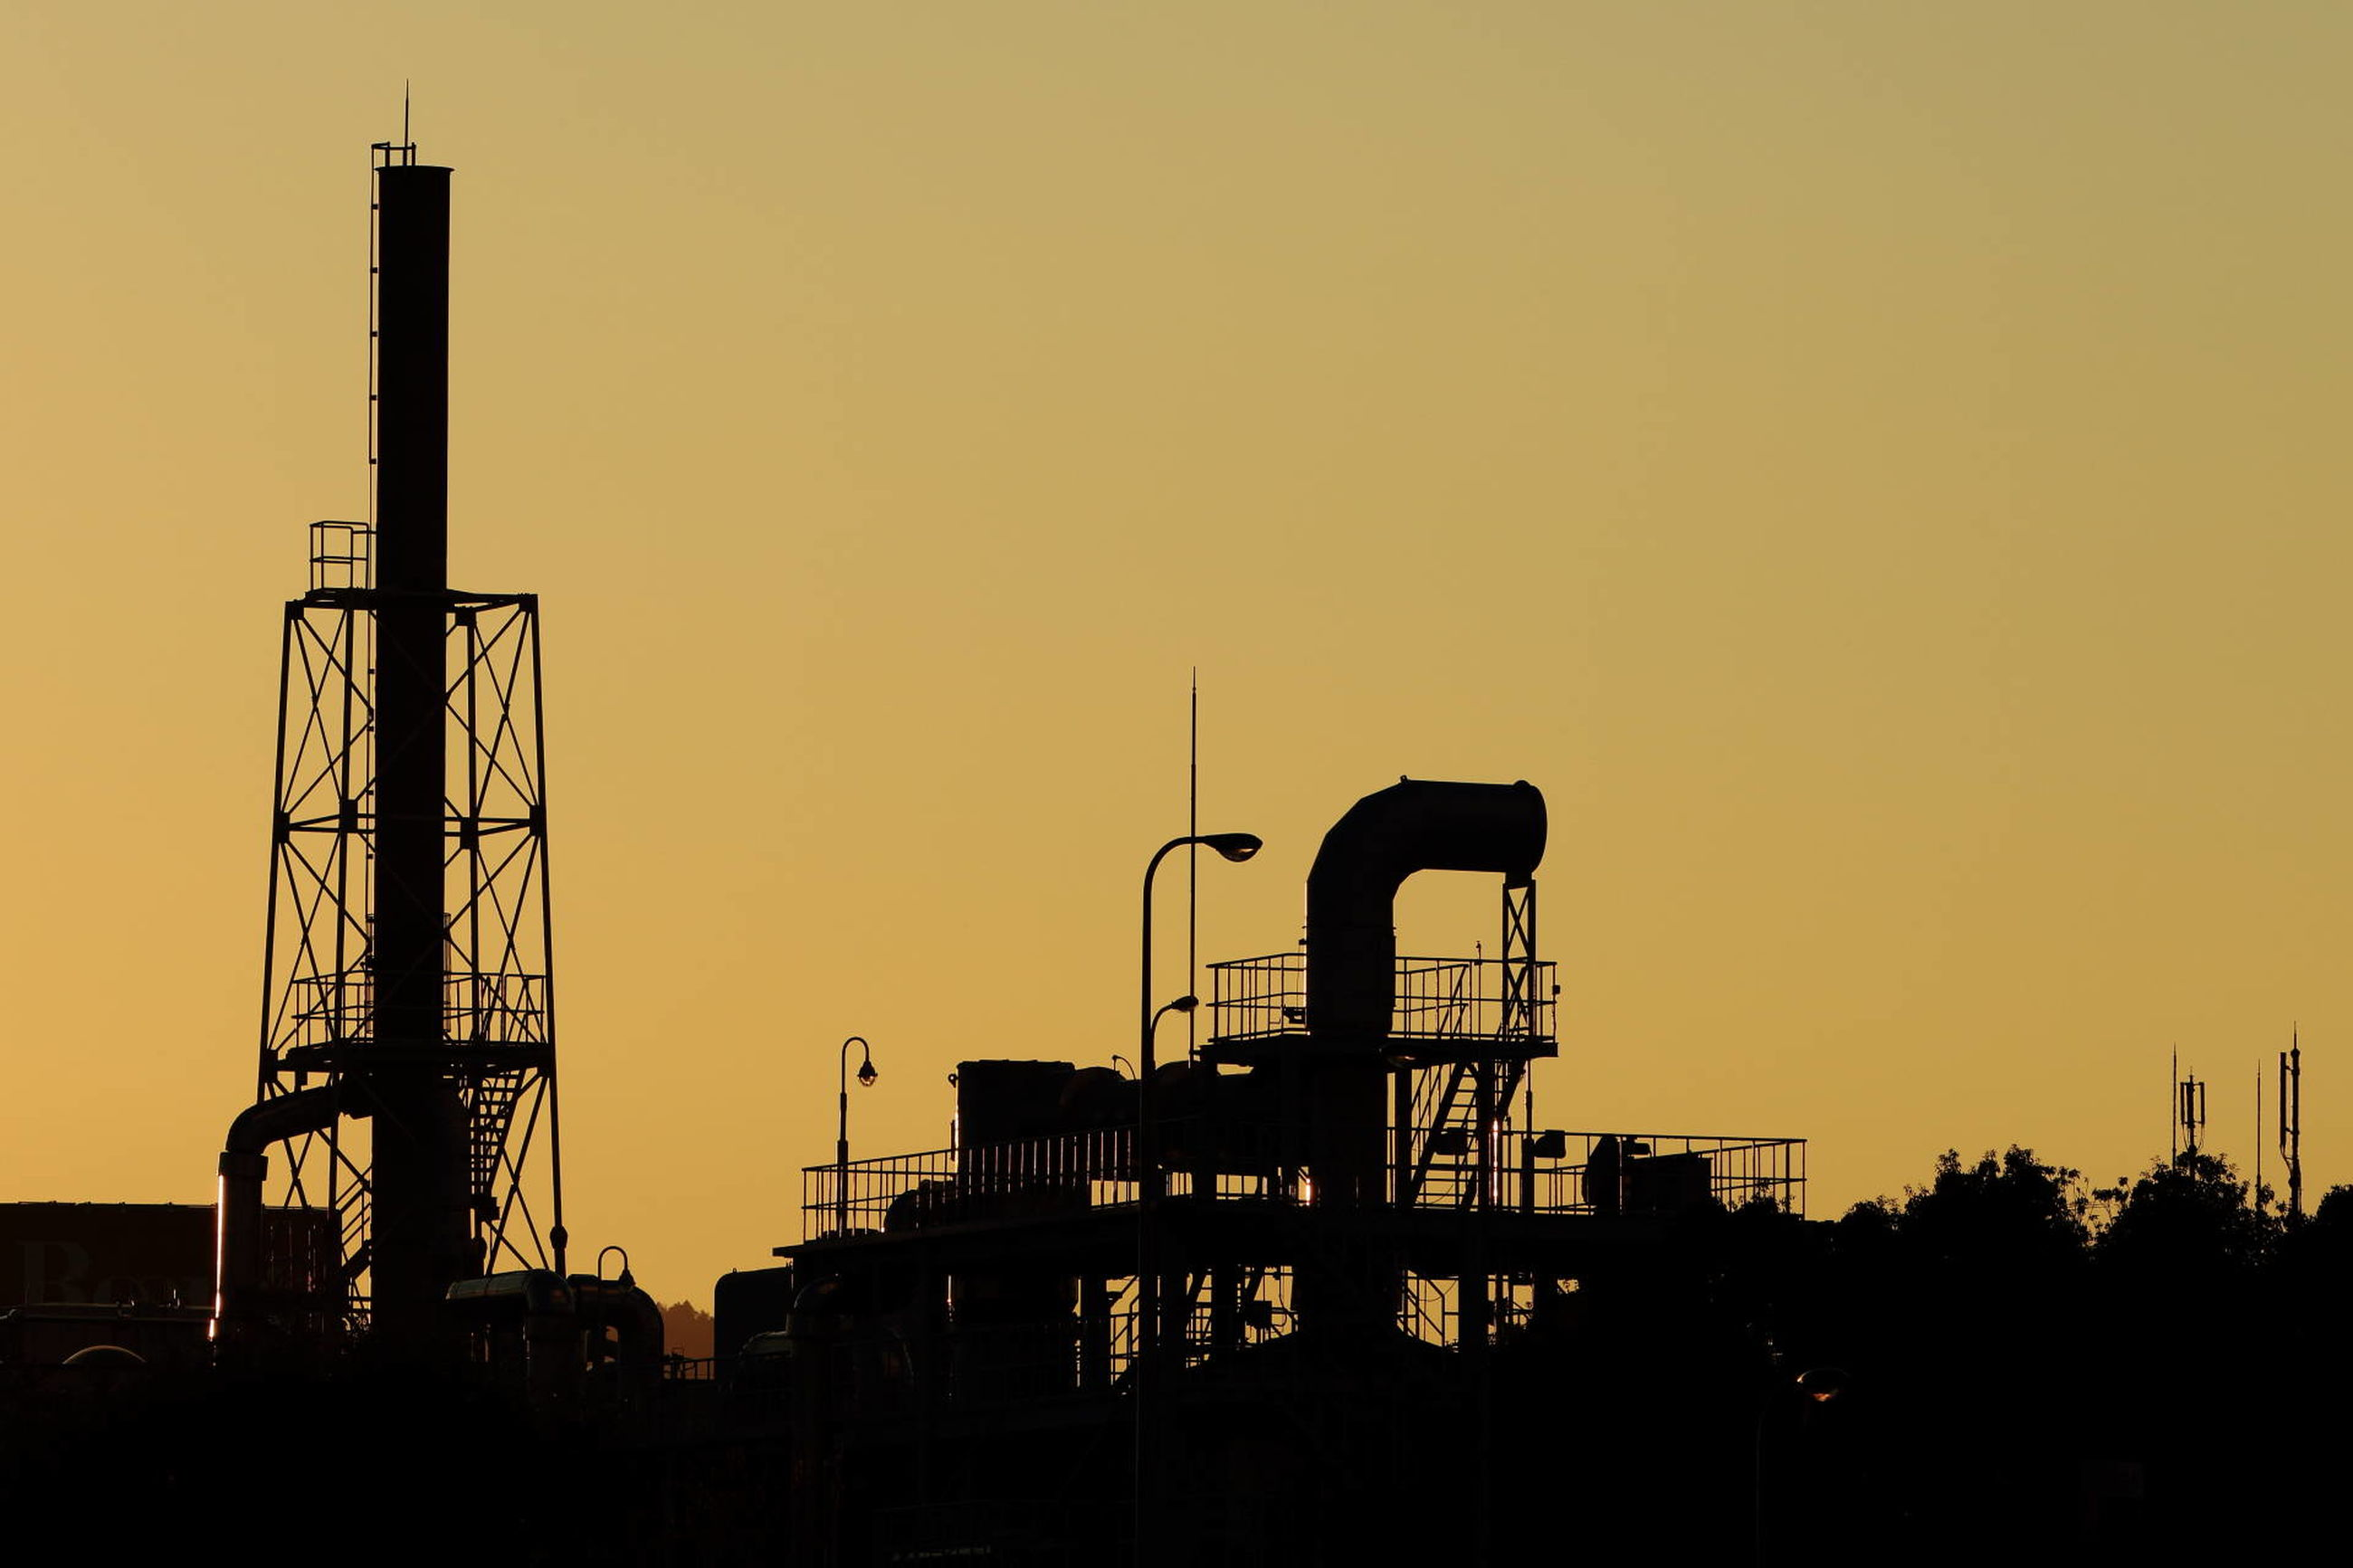 industry, sky, sunset, architecture, factory, built structure, nature, fuel and power generation, machinery, silhouette, building exterior, no people, construction industry, outdoors, development, low angle view, copy space, industrial building, crane - construction machinery, orange color, industrial equipment, construction equipment